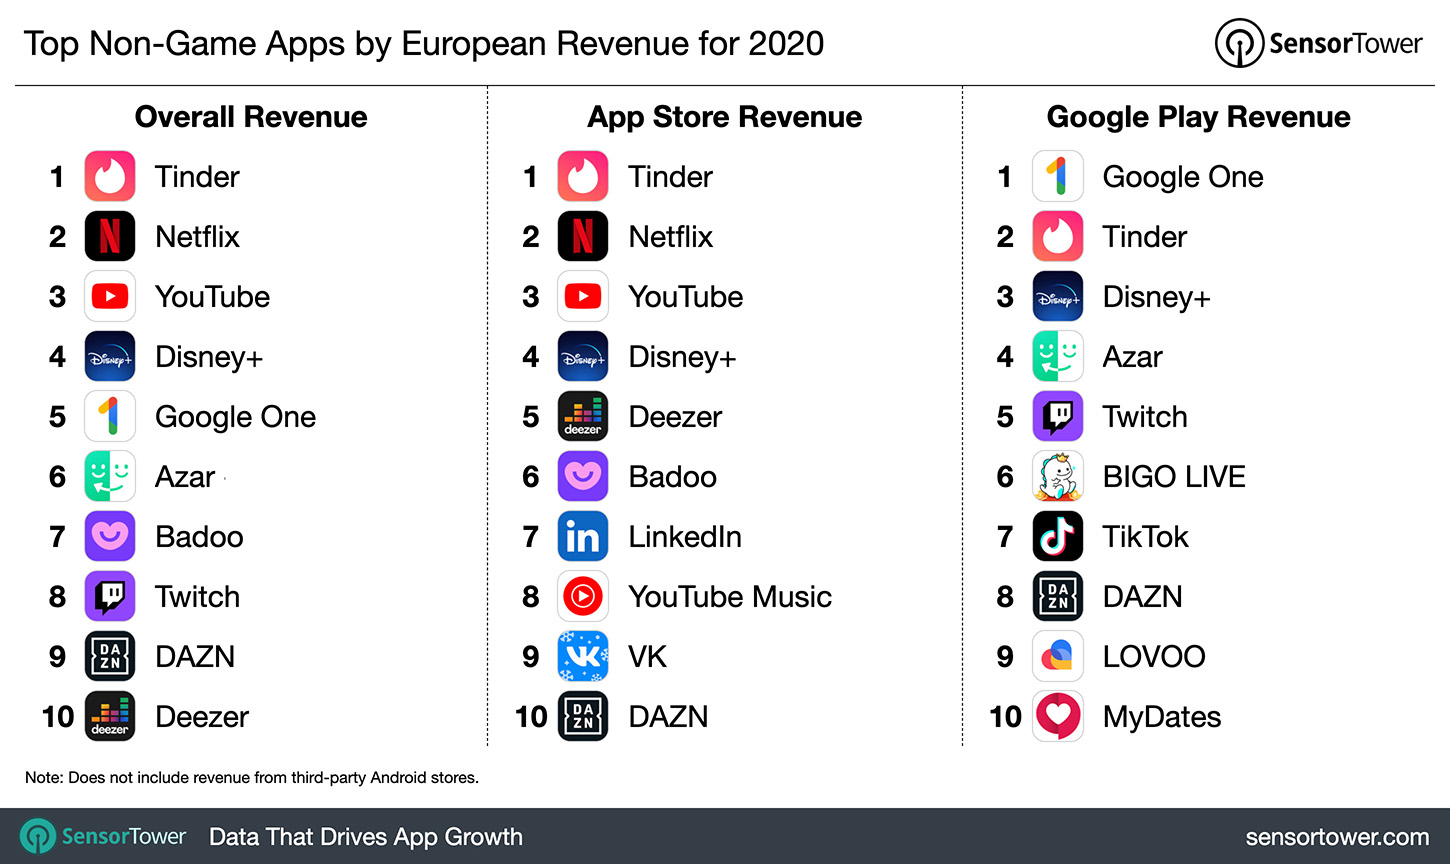 Top Non-Game Apps by European Revenue for 2020